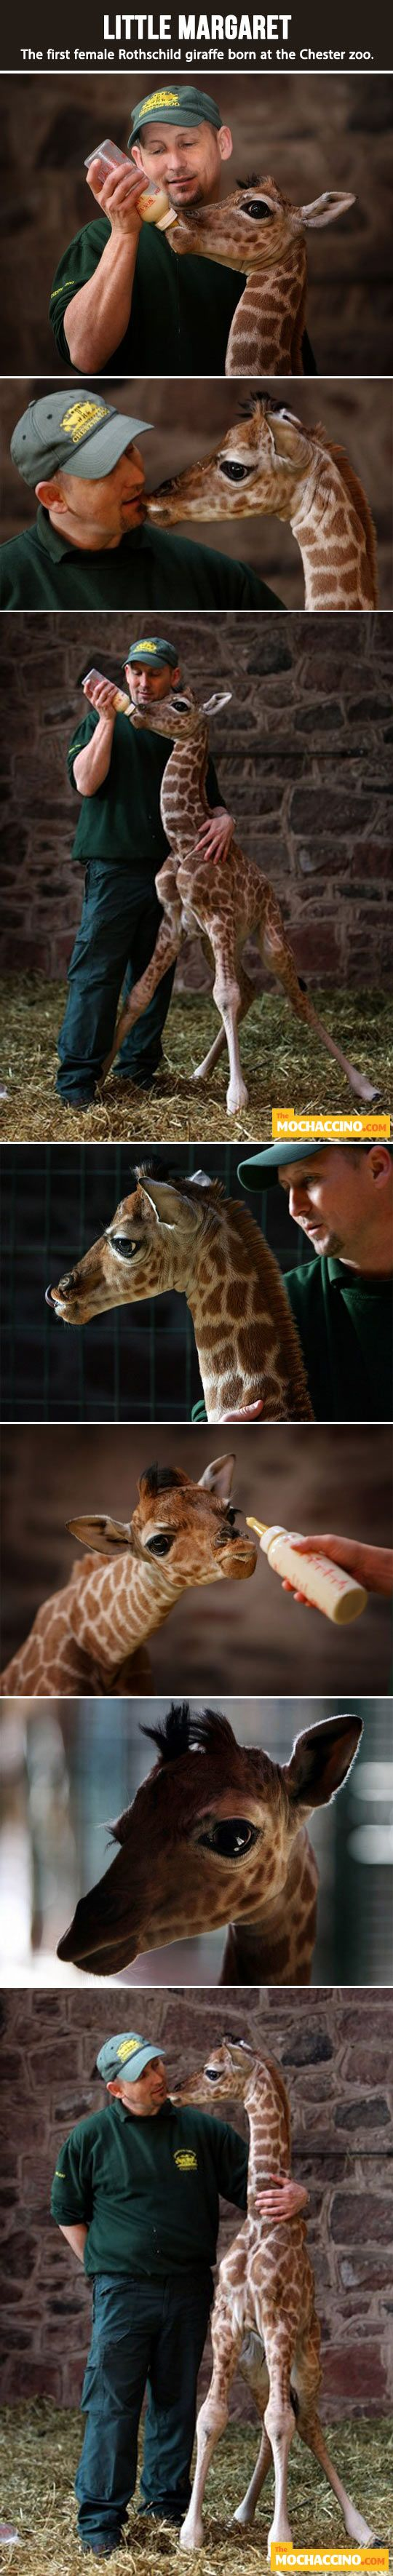 Omg that's adorable